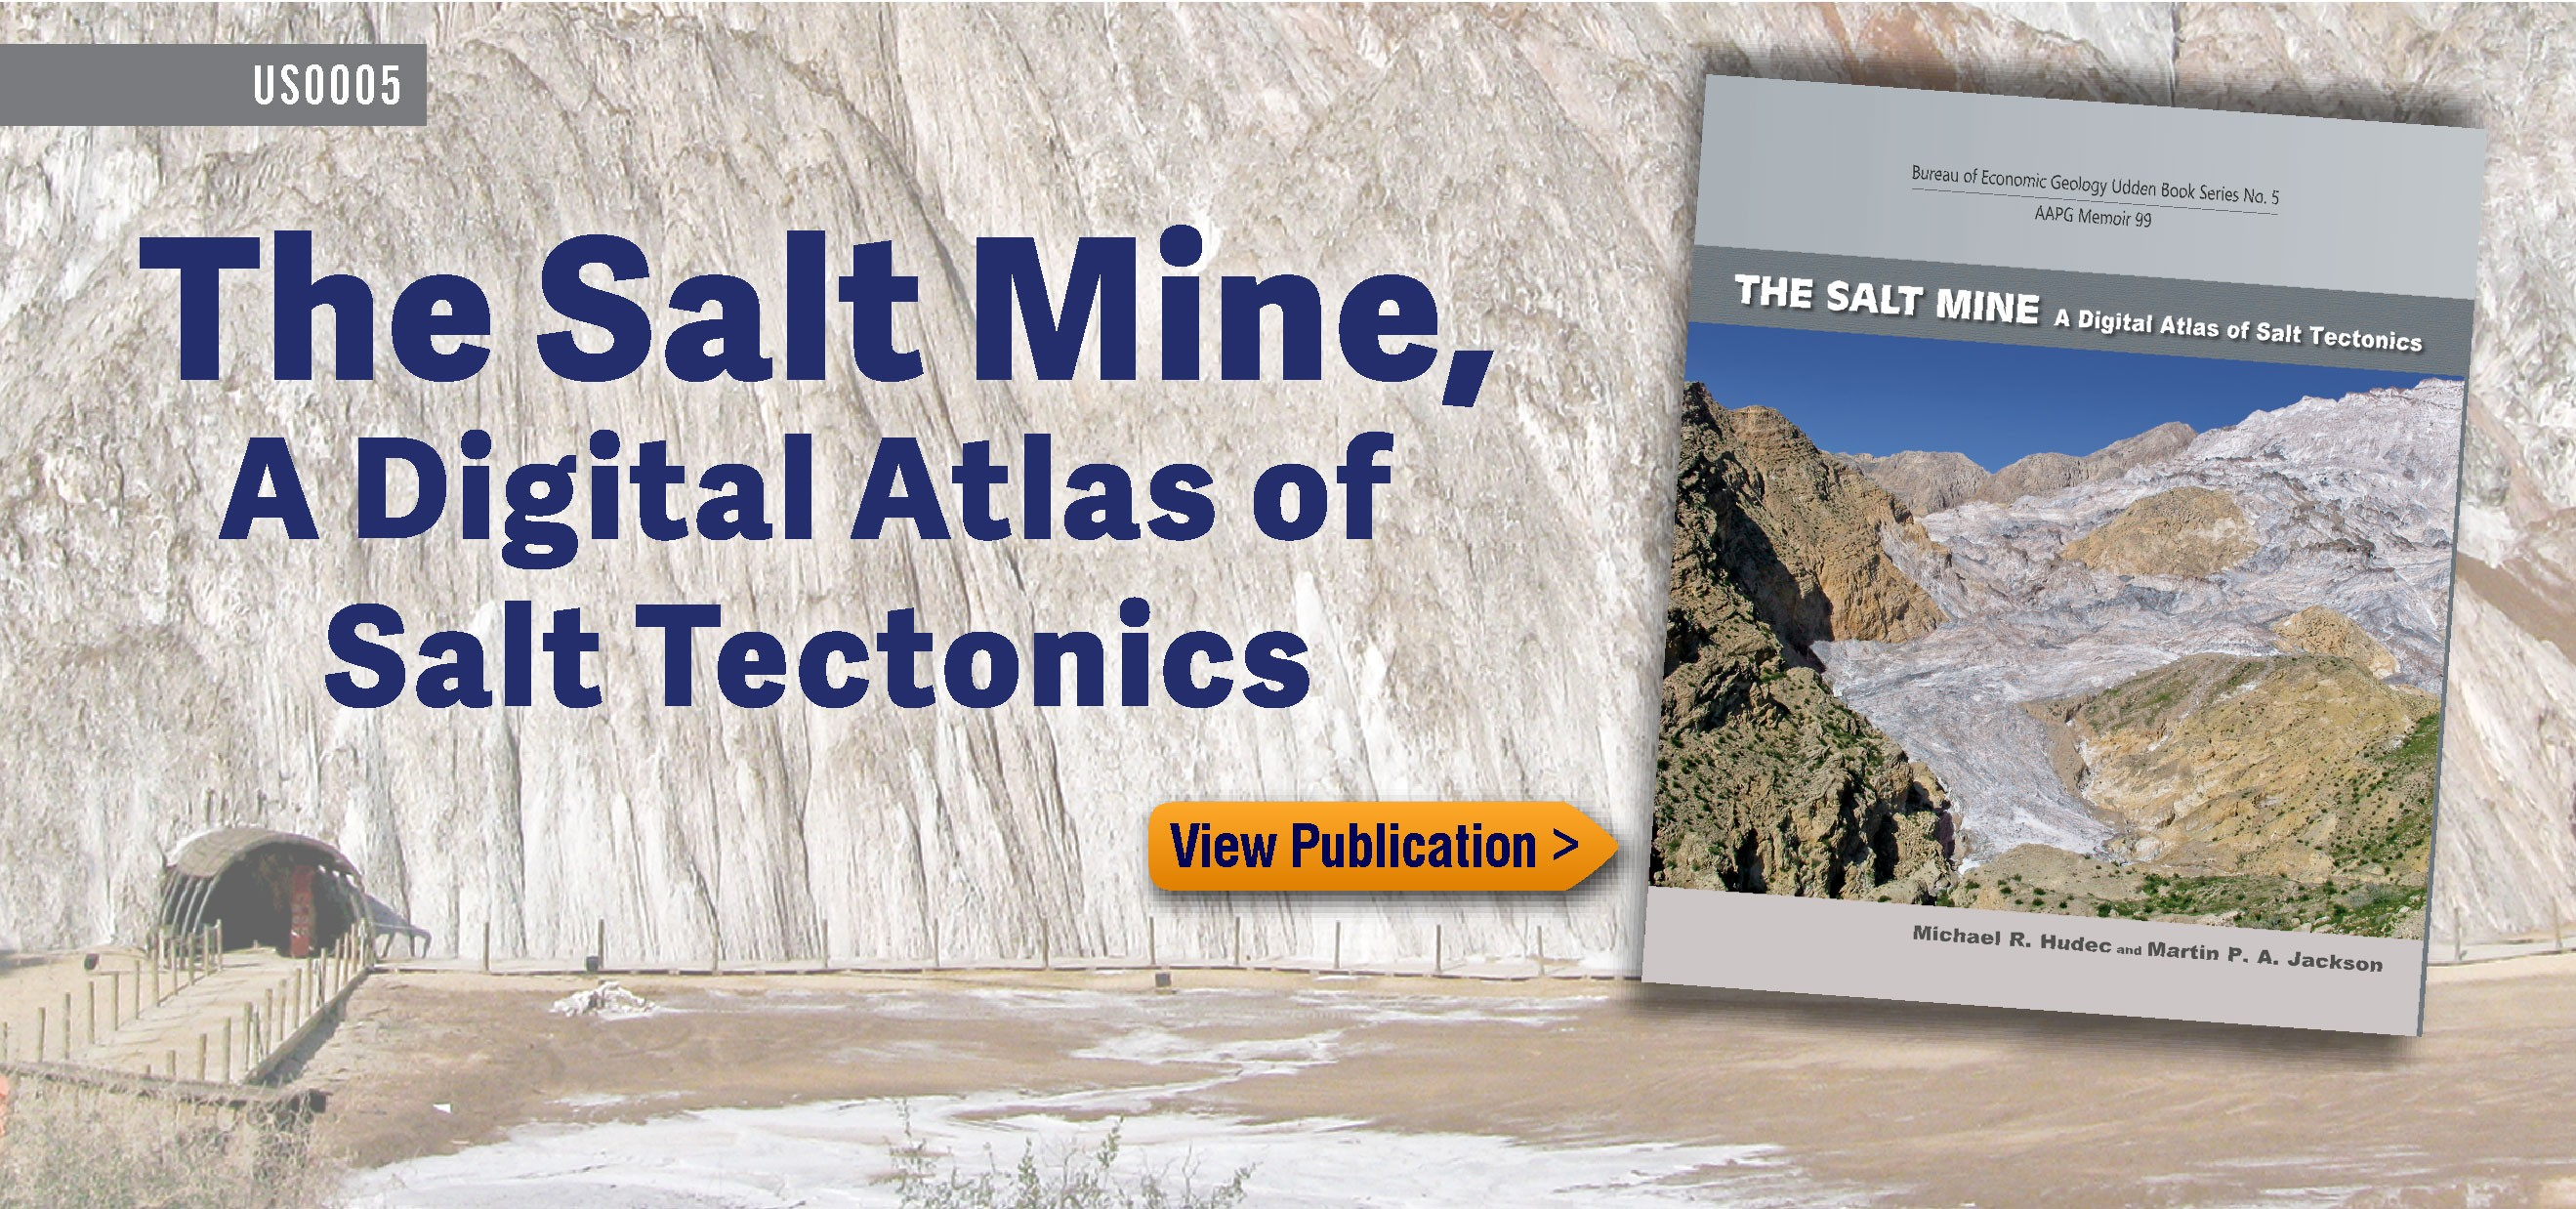 US0005D. The Salt Mine: A Digital Atlas of Salt Tectonics - Downloadable Version